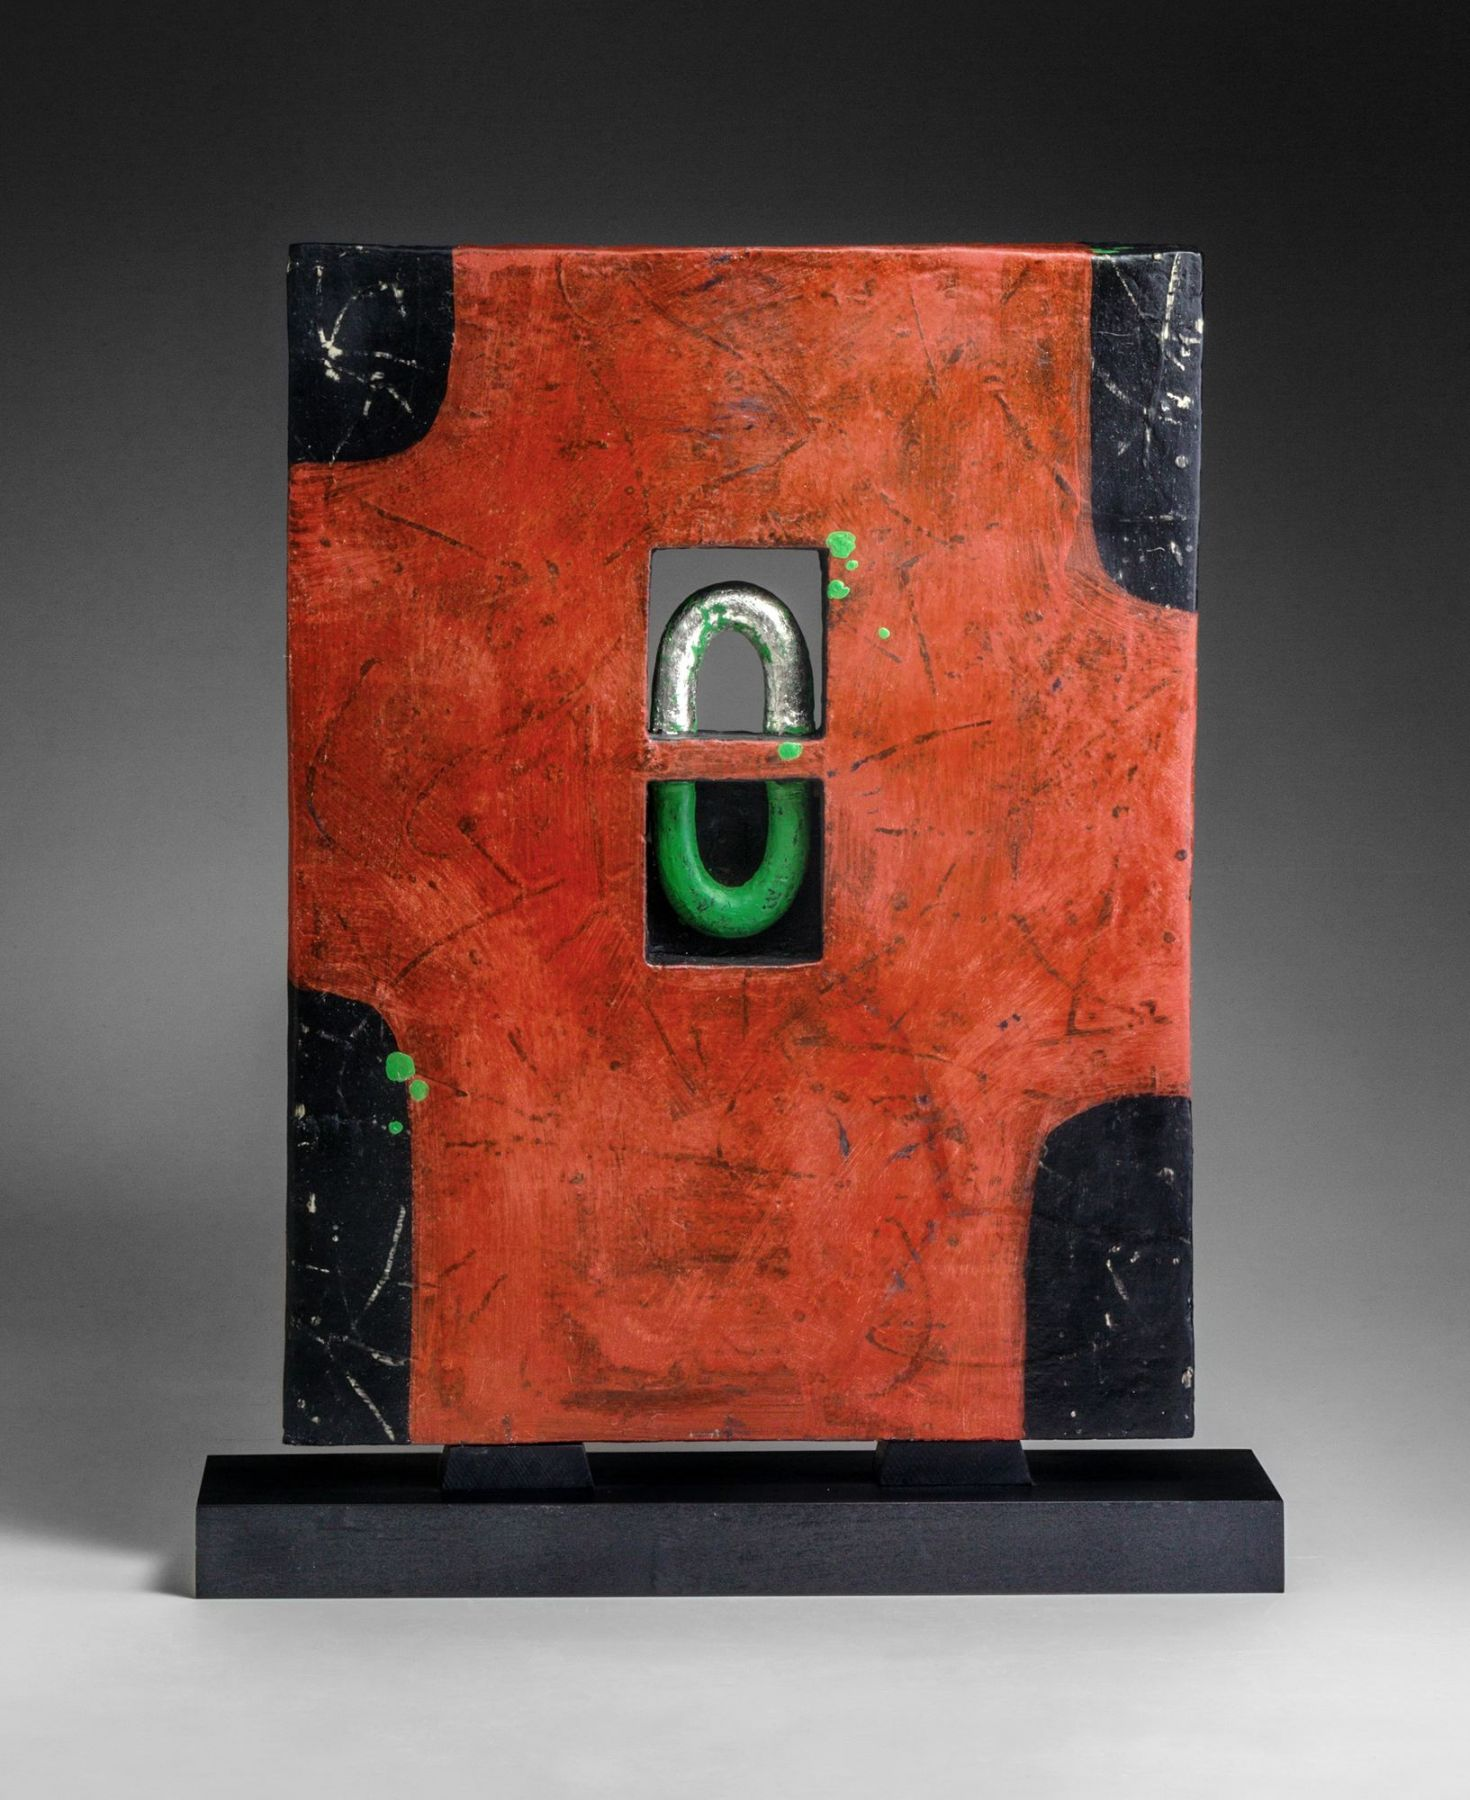 Morino Hiroaki Taimei (b. 1934), WORK 16-12; Rectangular standing textured, red screen-like sculpture with central square perforation inset with curved arches in green and silver and four corners in black